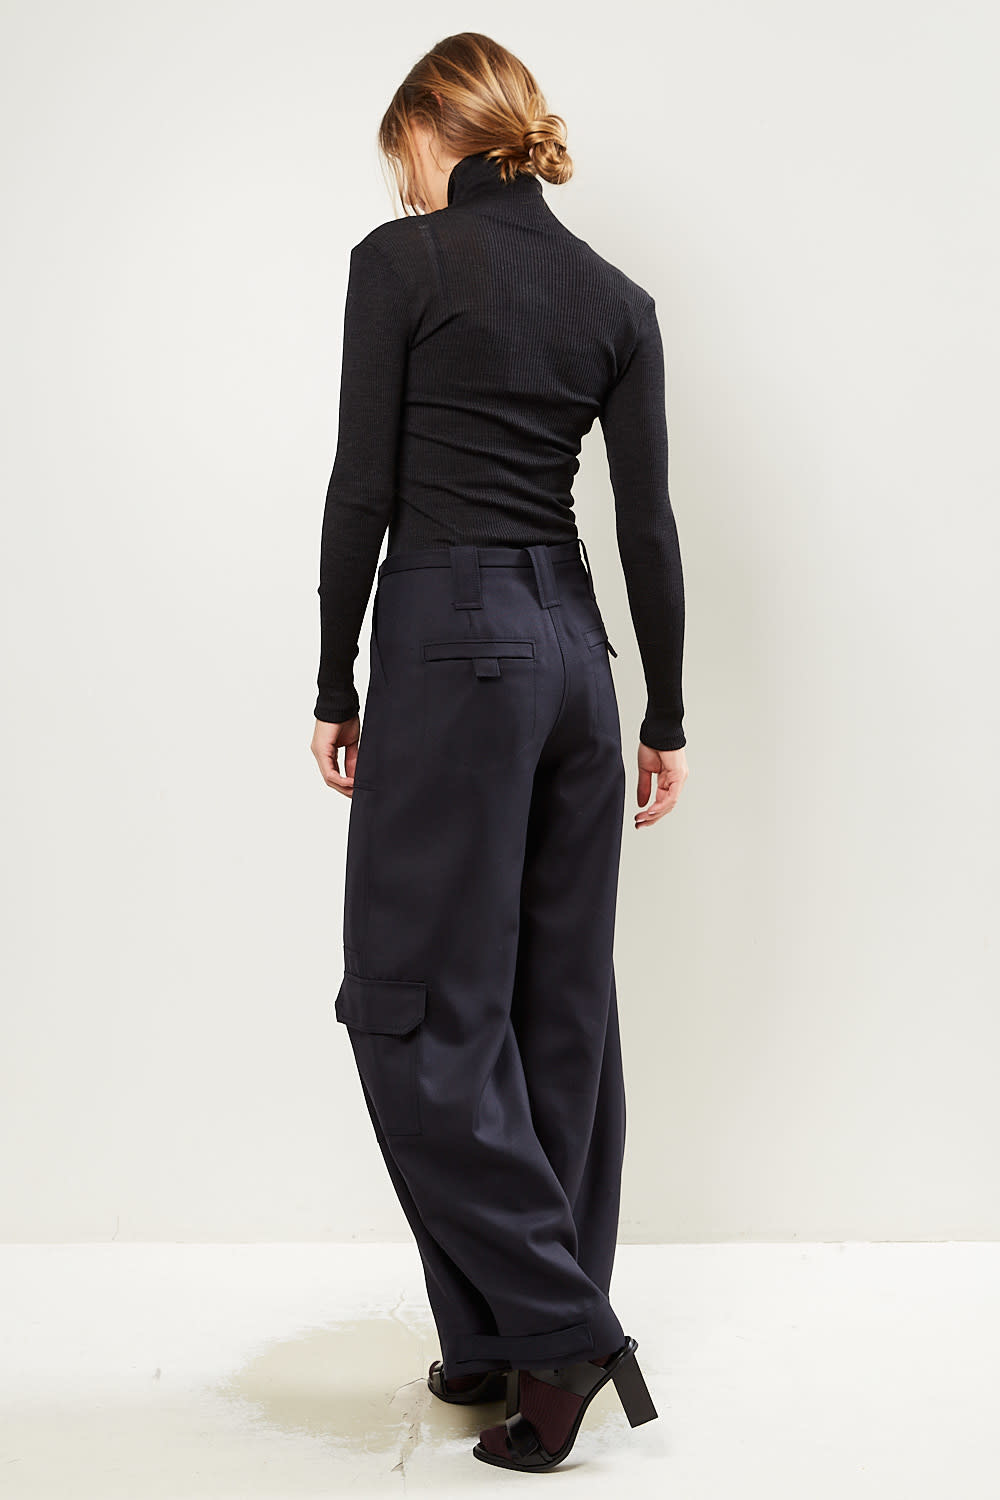 Ganni - Wool suiting pants